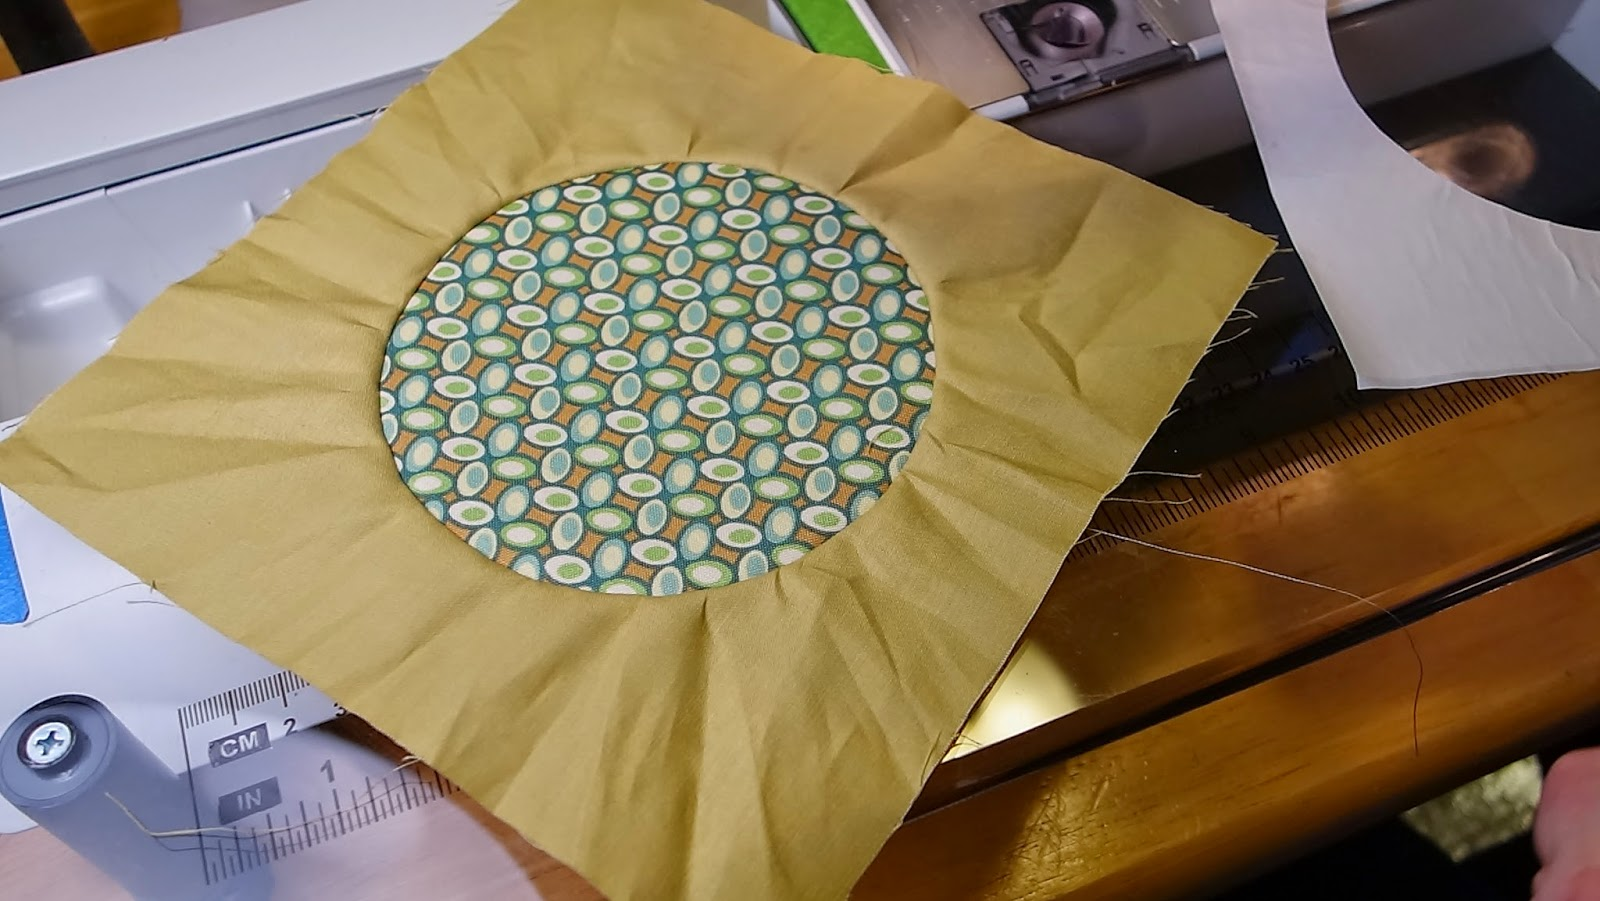 http://mariescreativespace.blogspot.com/2014/05/nhmqg-bom-plus-circle-tutorial.html